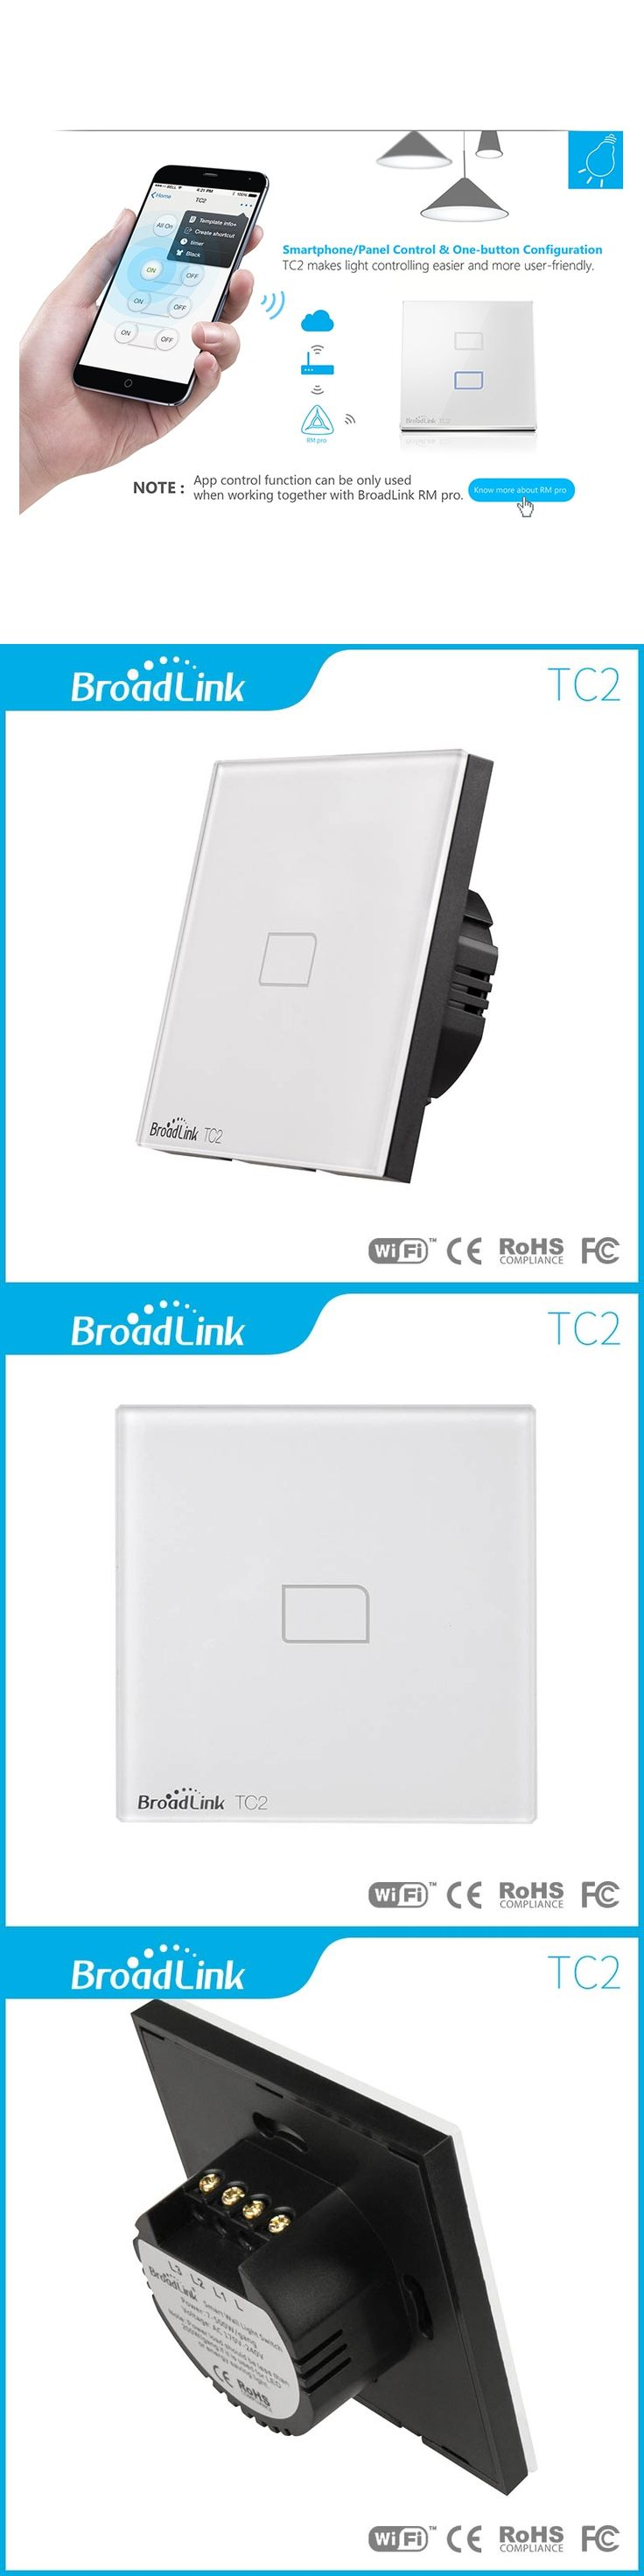 Broadlink EU Standard TC2 1 Gang Wireless Control Light Switch,Crystal Glass Panel Touch Wall Switch,Light Switch for Smart Home